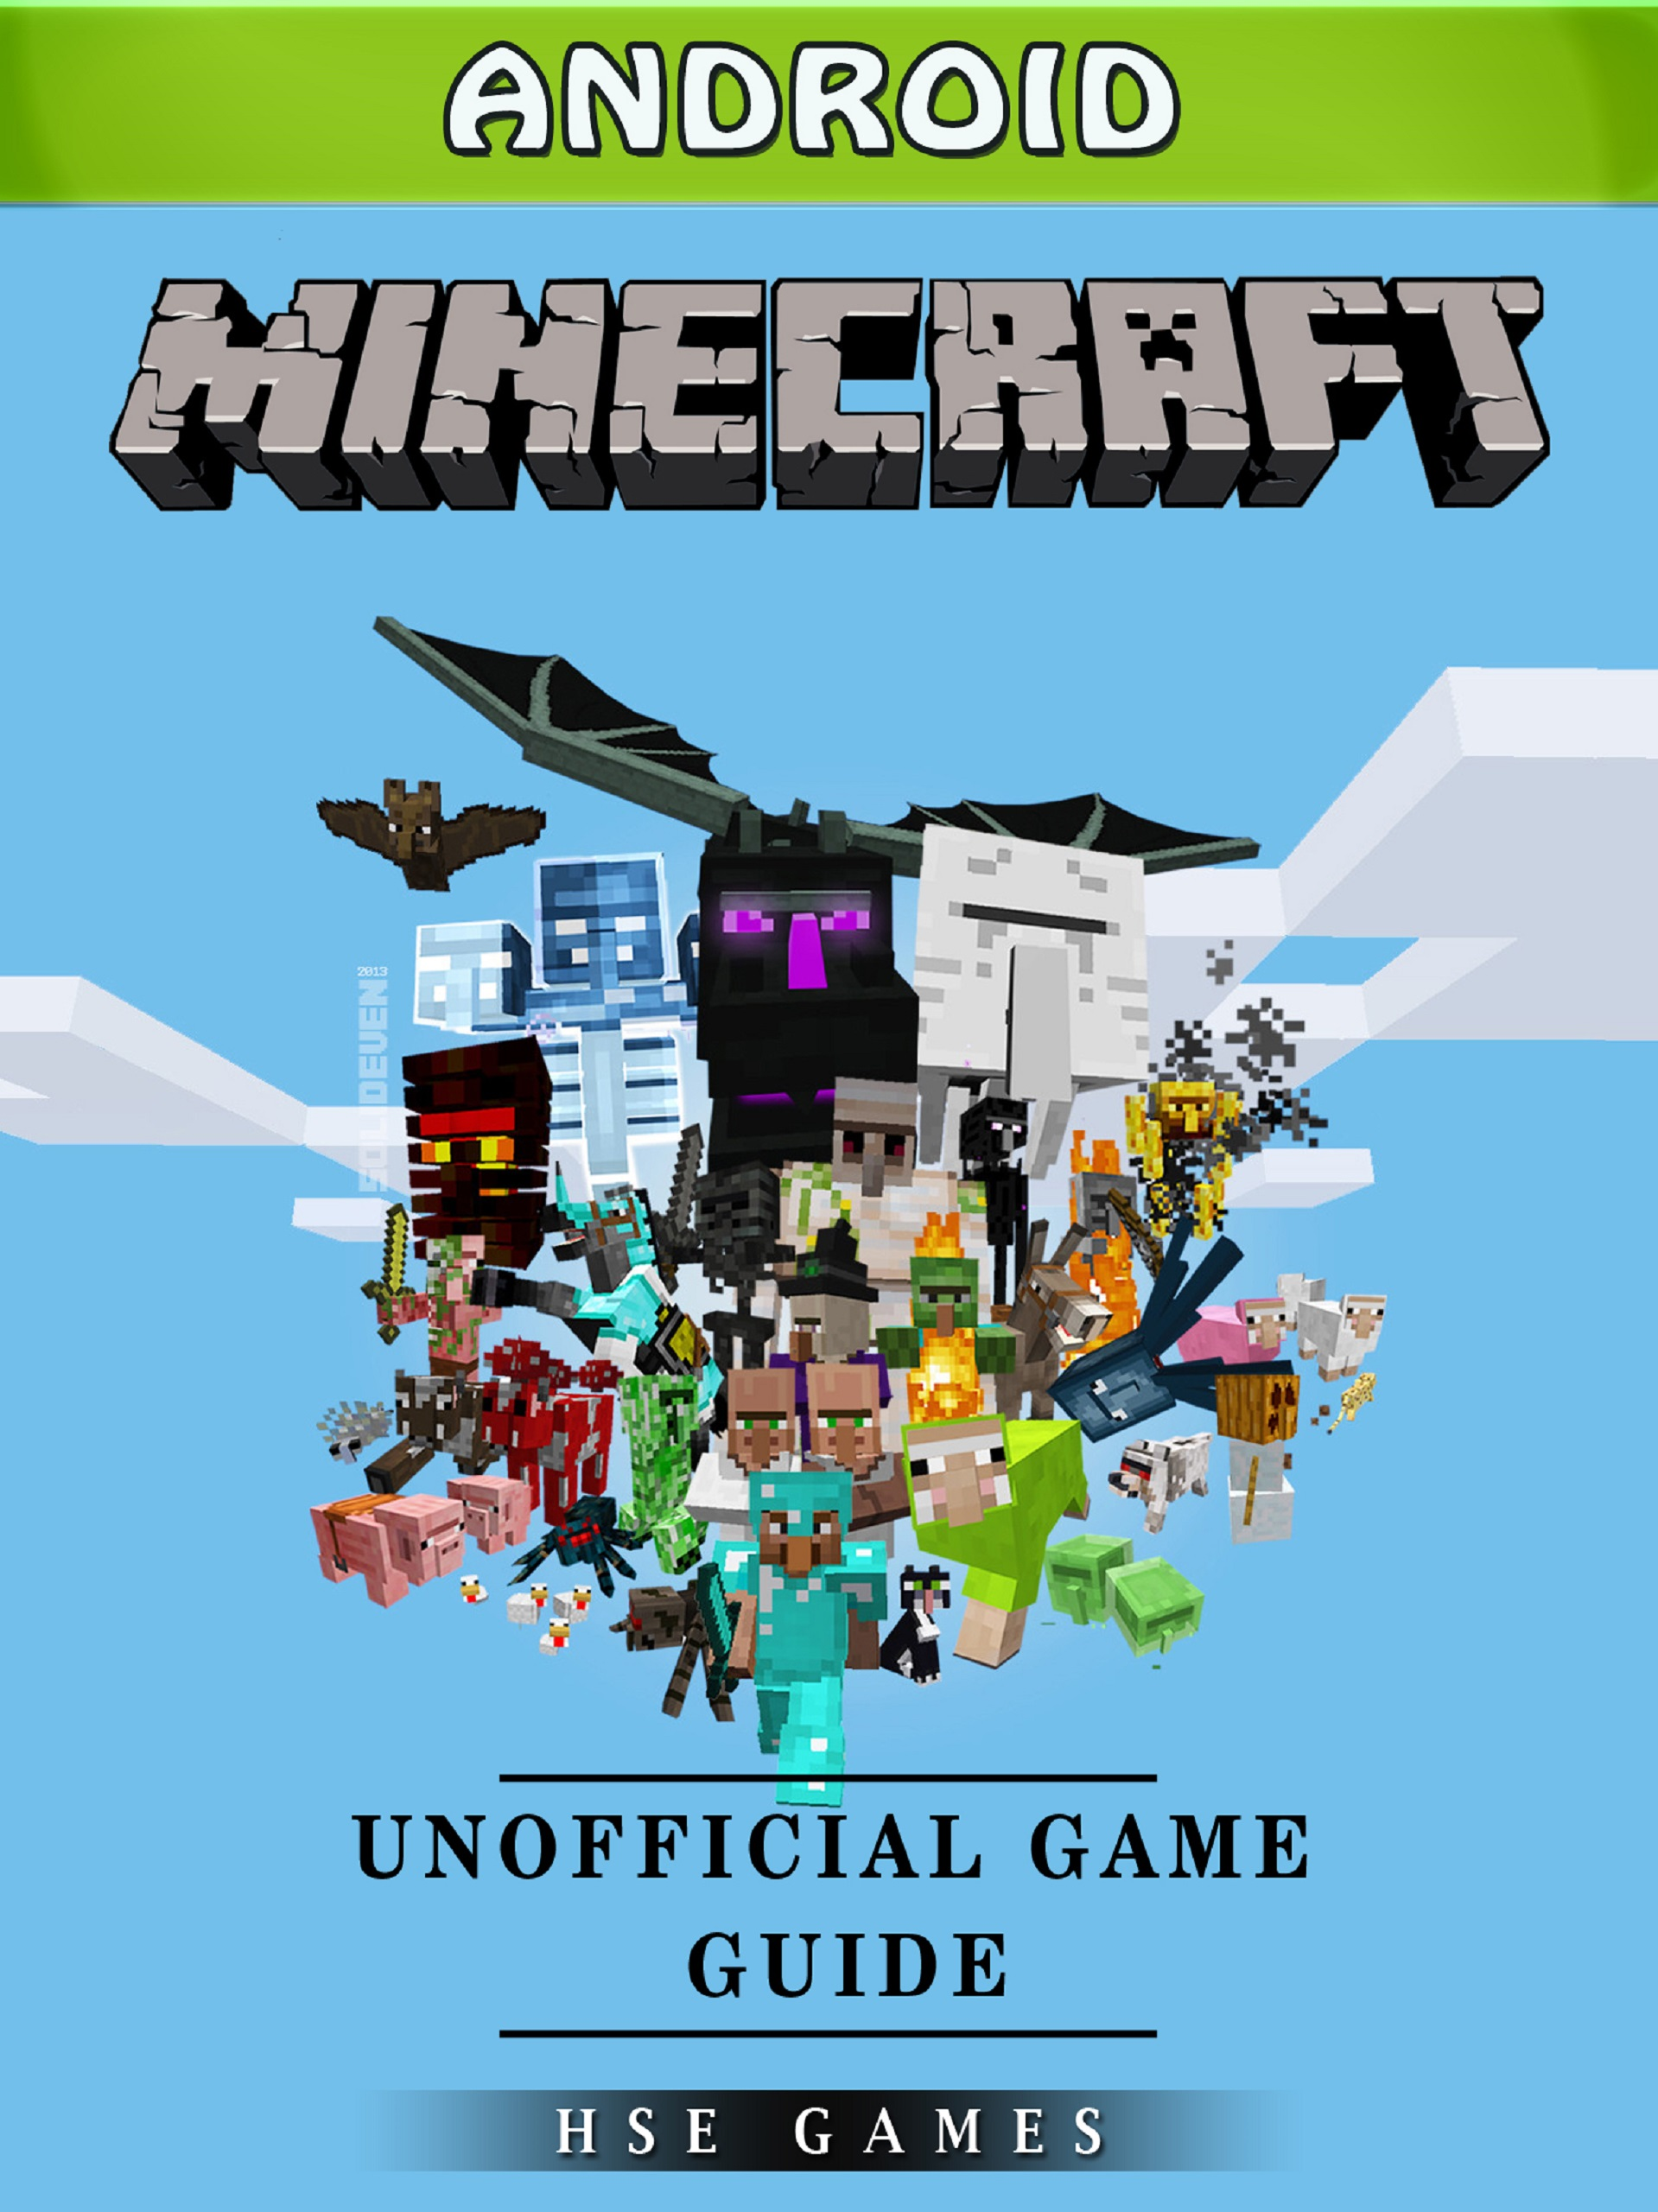 Minecraft Android Unofficial Game Guide